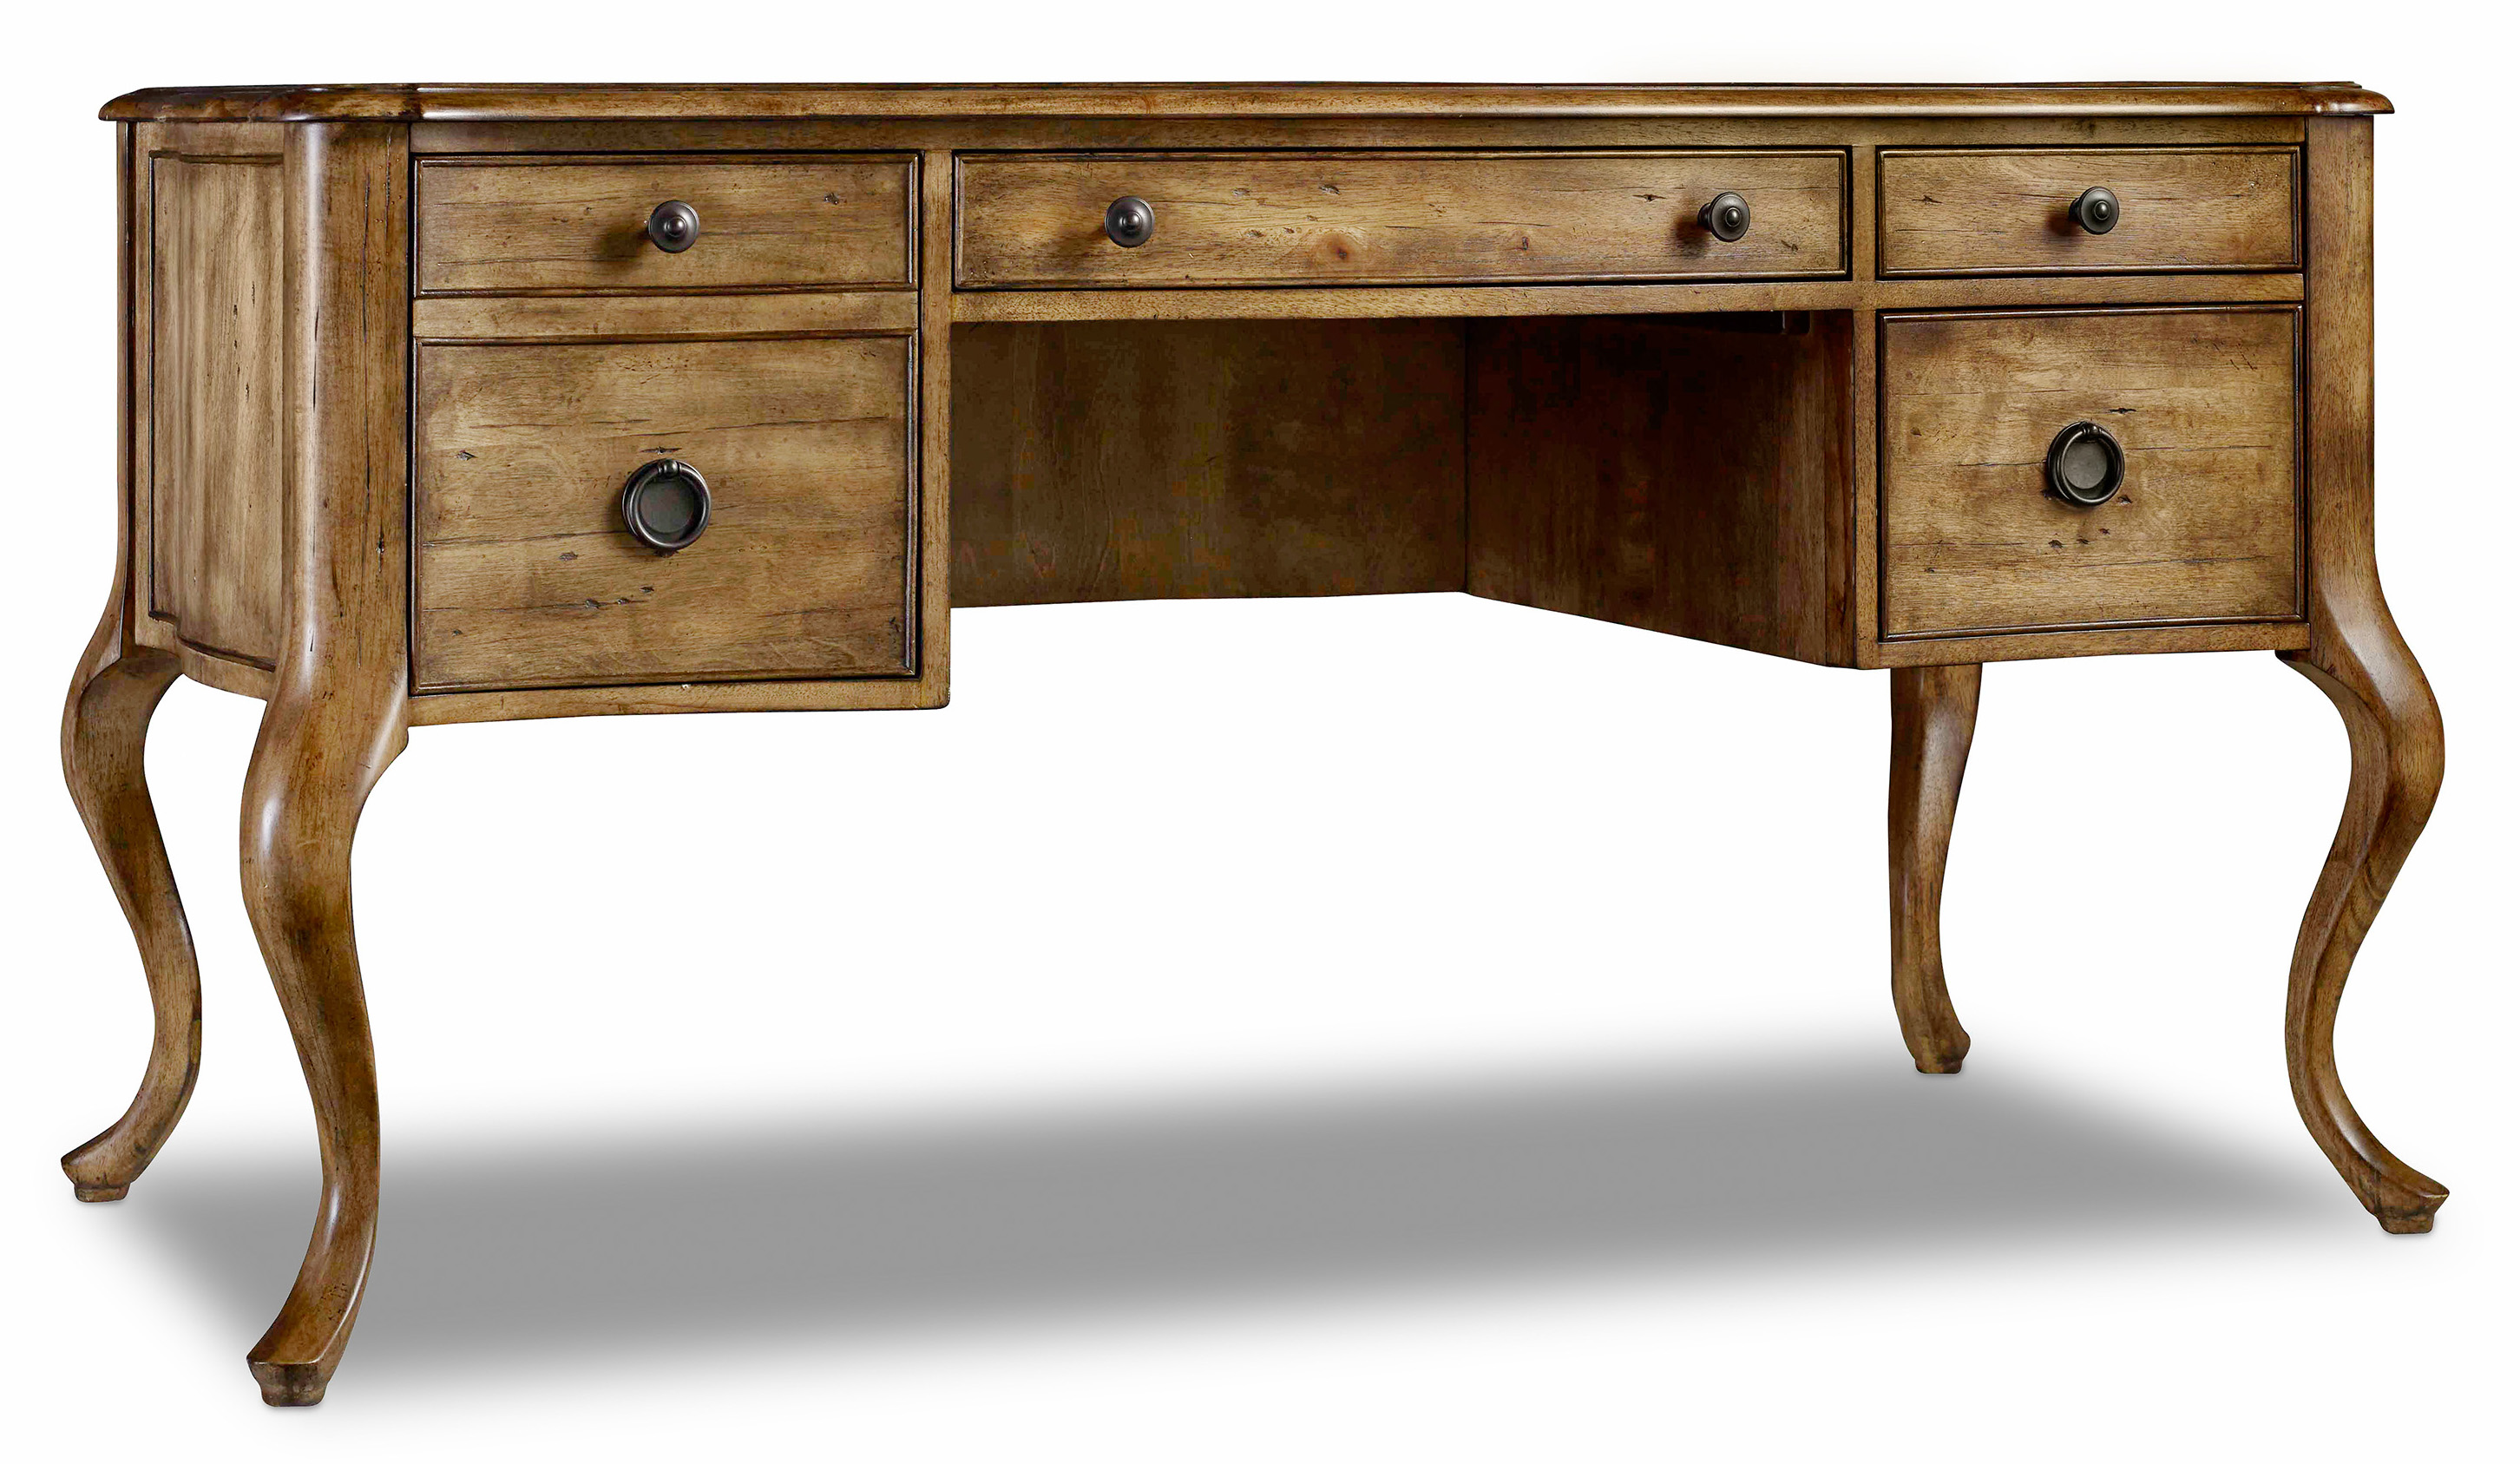 Hooker Furniture Archivist Writing Desk - Item Number: 5447-10458A-TOFFEE